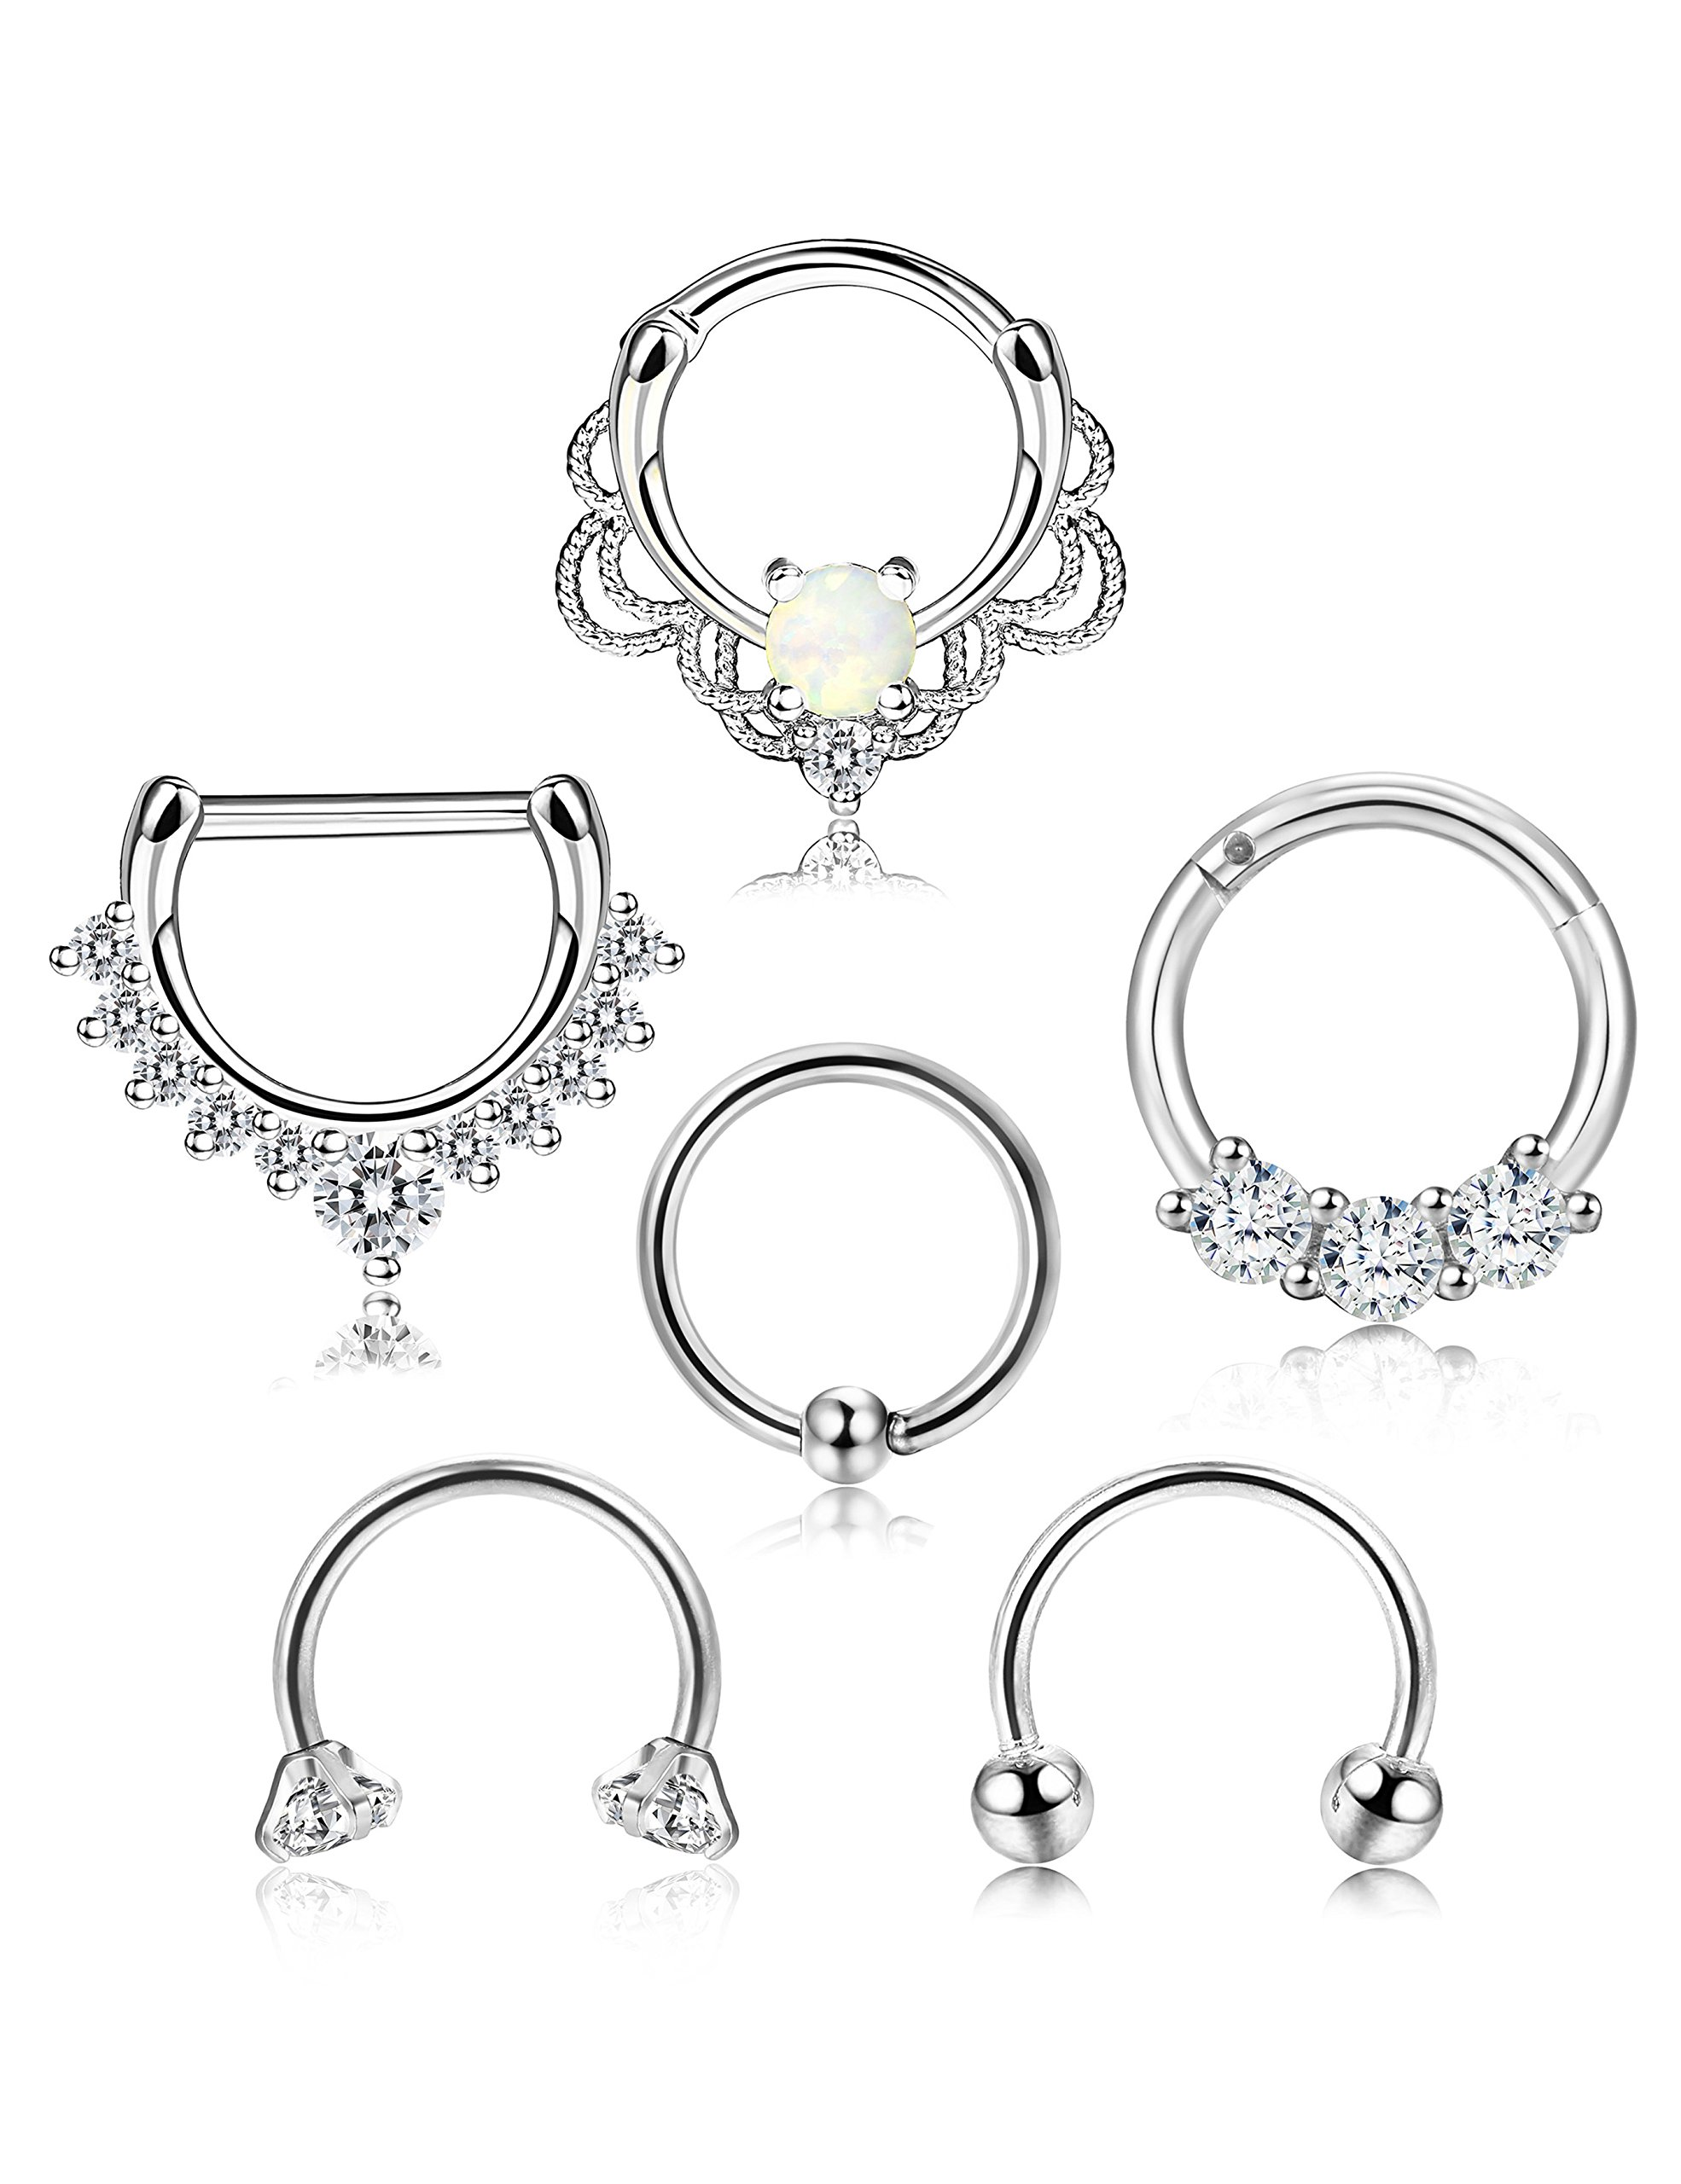 ORAZIO 6PCS 16G 316L Stainless Steel Septum Hoop Nose Ring 8MM Horseshoe Rings Cartilage Clicker Piercing Jewelry 3 Colors